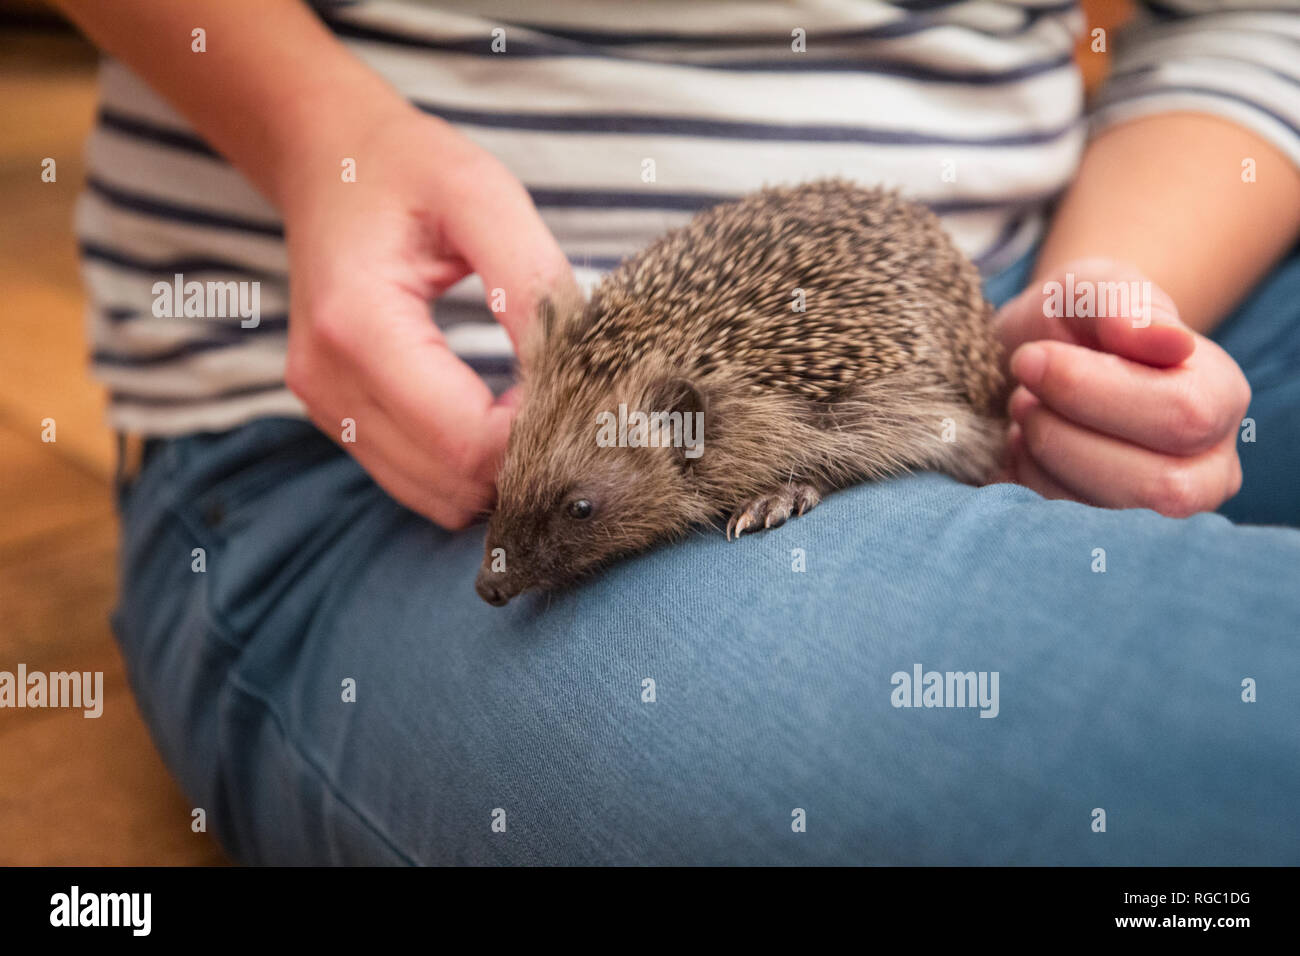 Woman with hedgehog on her thigh, close-up - Stock Image